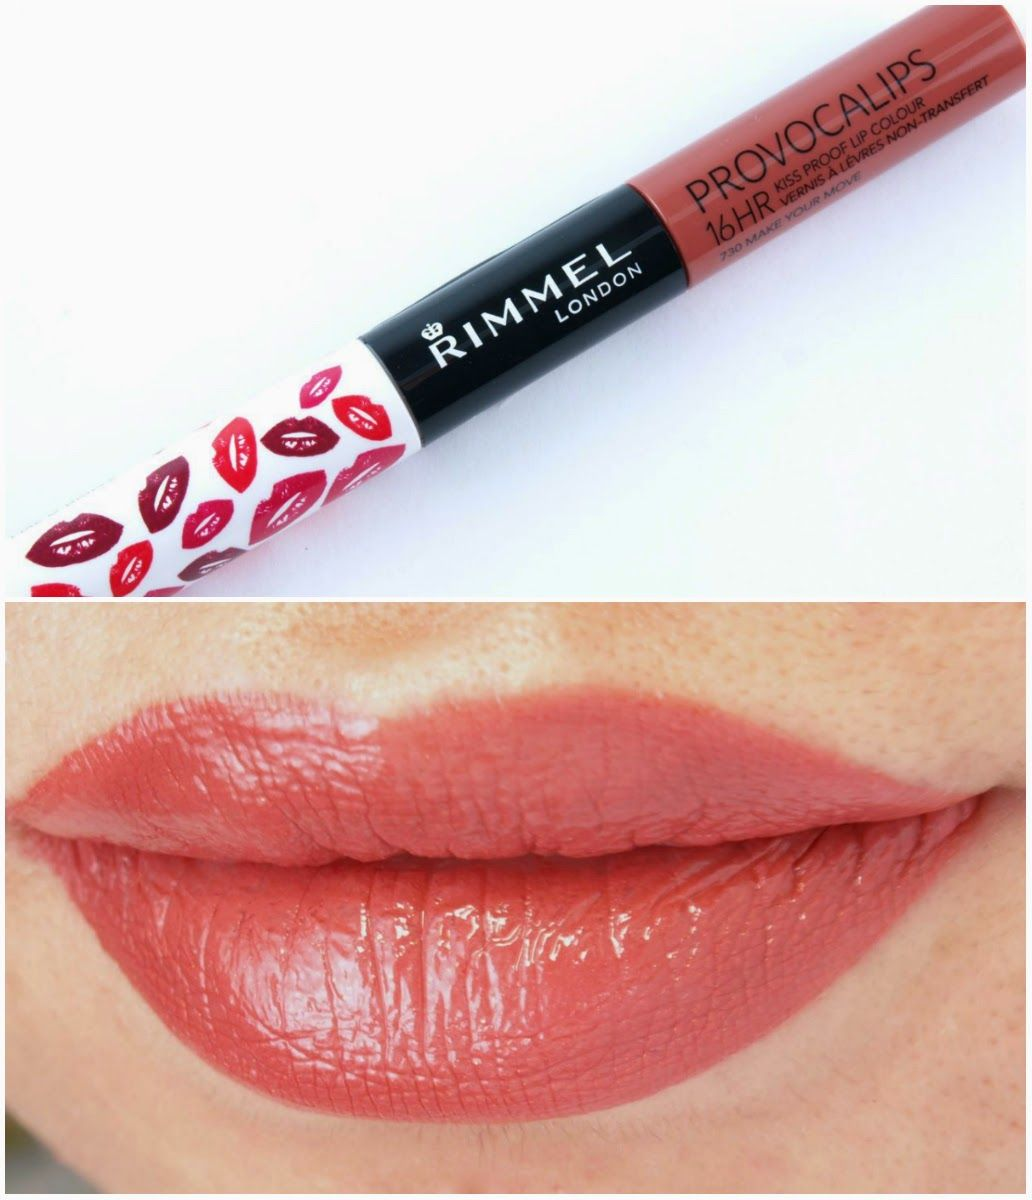 Rimmel Provocalips 16hr Kiss Proof Lip Color Review And Swatches Best Drugstore Liquid Lipstick Rimmel Provocalips Drugstore Liquid Lipstick